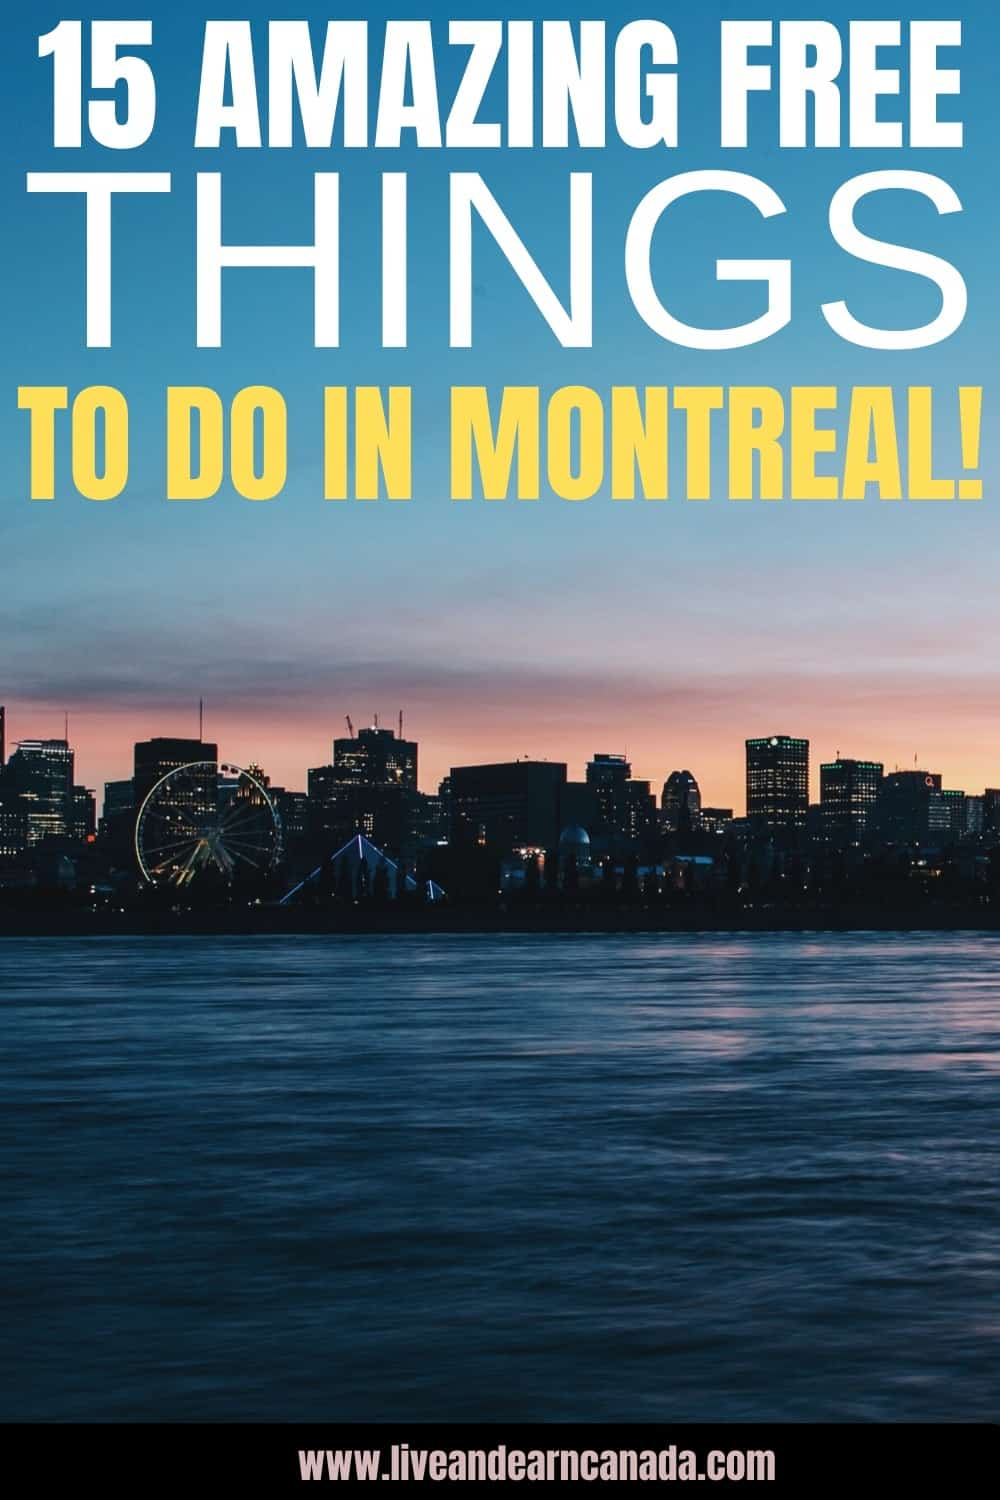 Are you looking for free things to do in Montreal, Canada? What ever you need, we have listed a few fun and cheap things you can do in Montreal today! #Montreal #Whattodoinmontreal